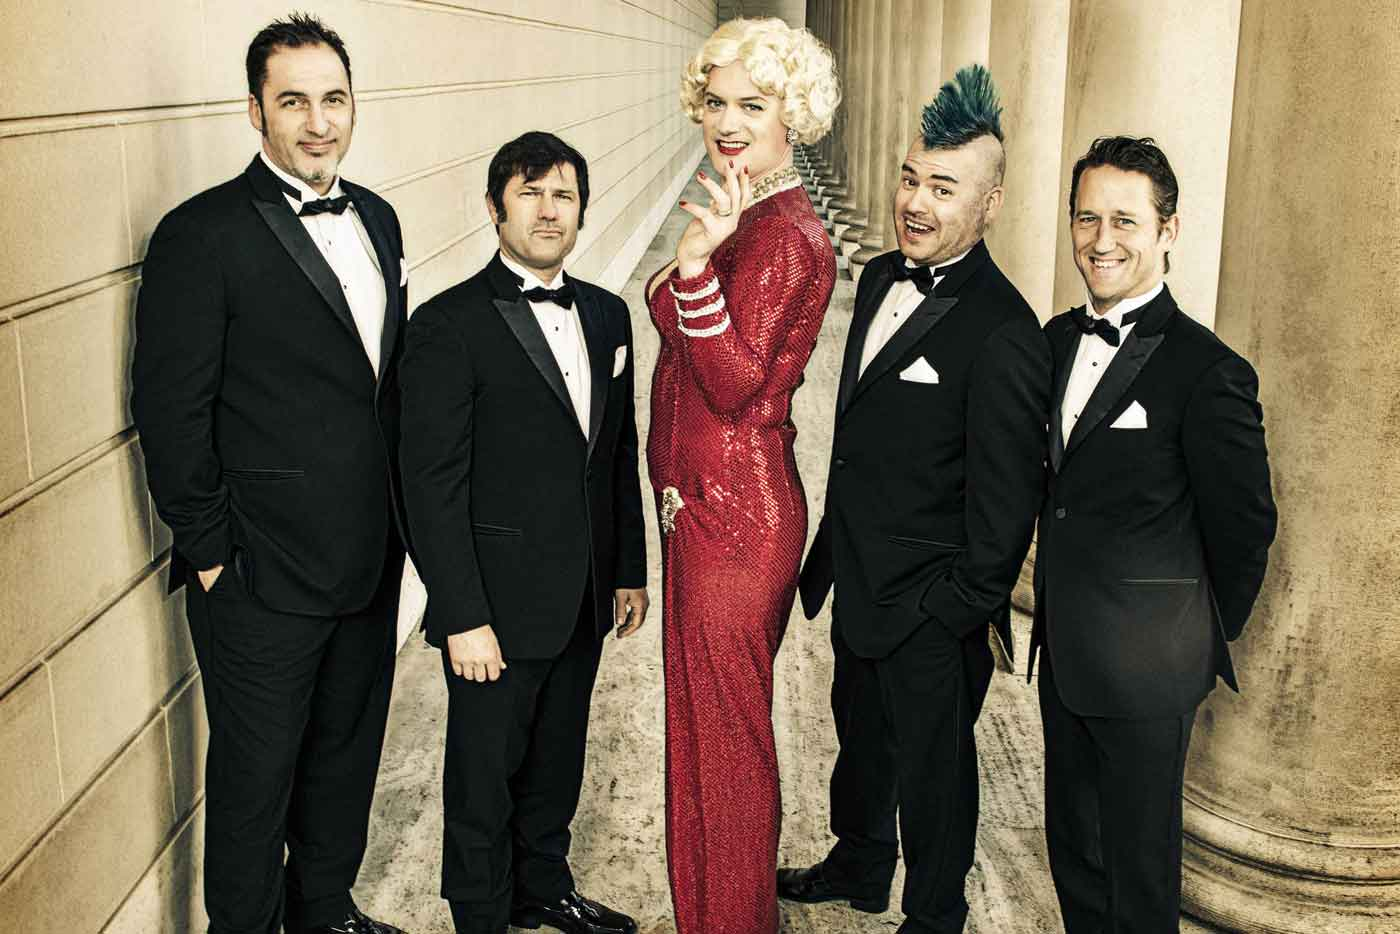 La superbanda de versiones Me First And The Gimme Gimmes llega a Bilbao